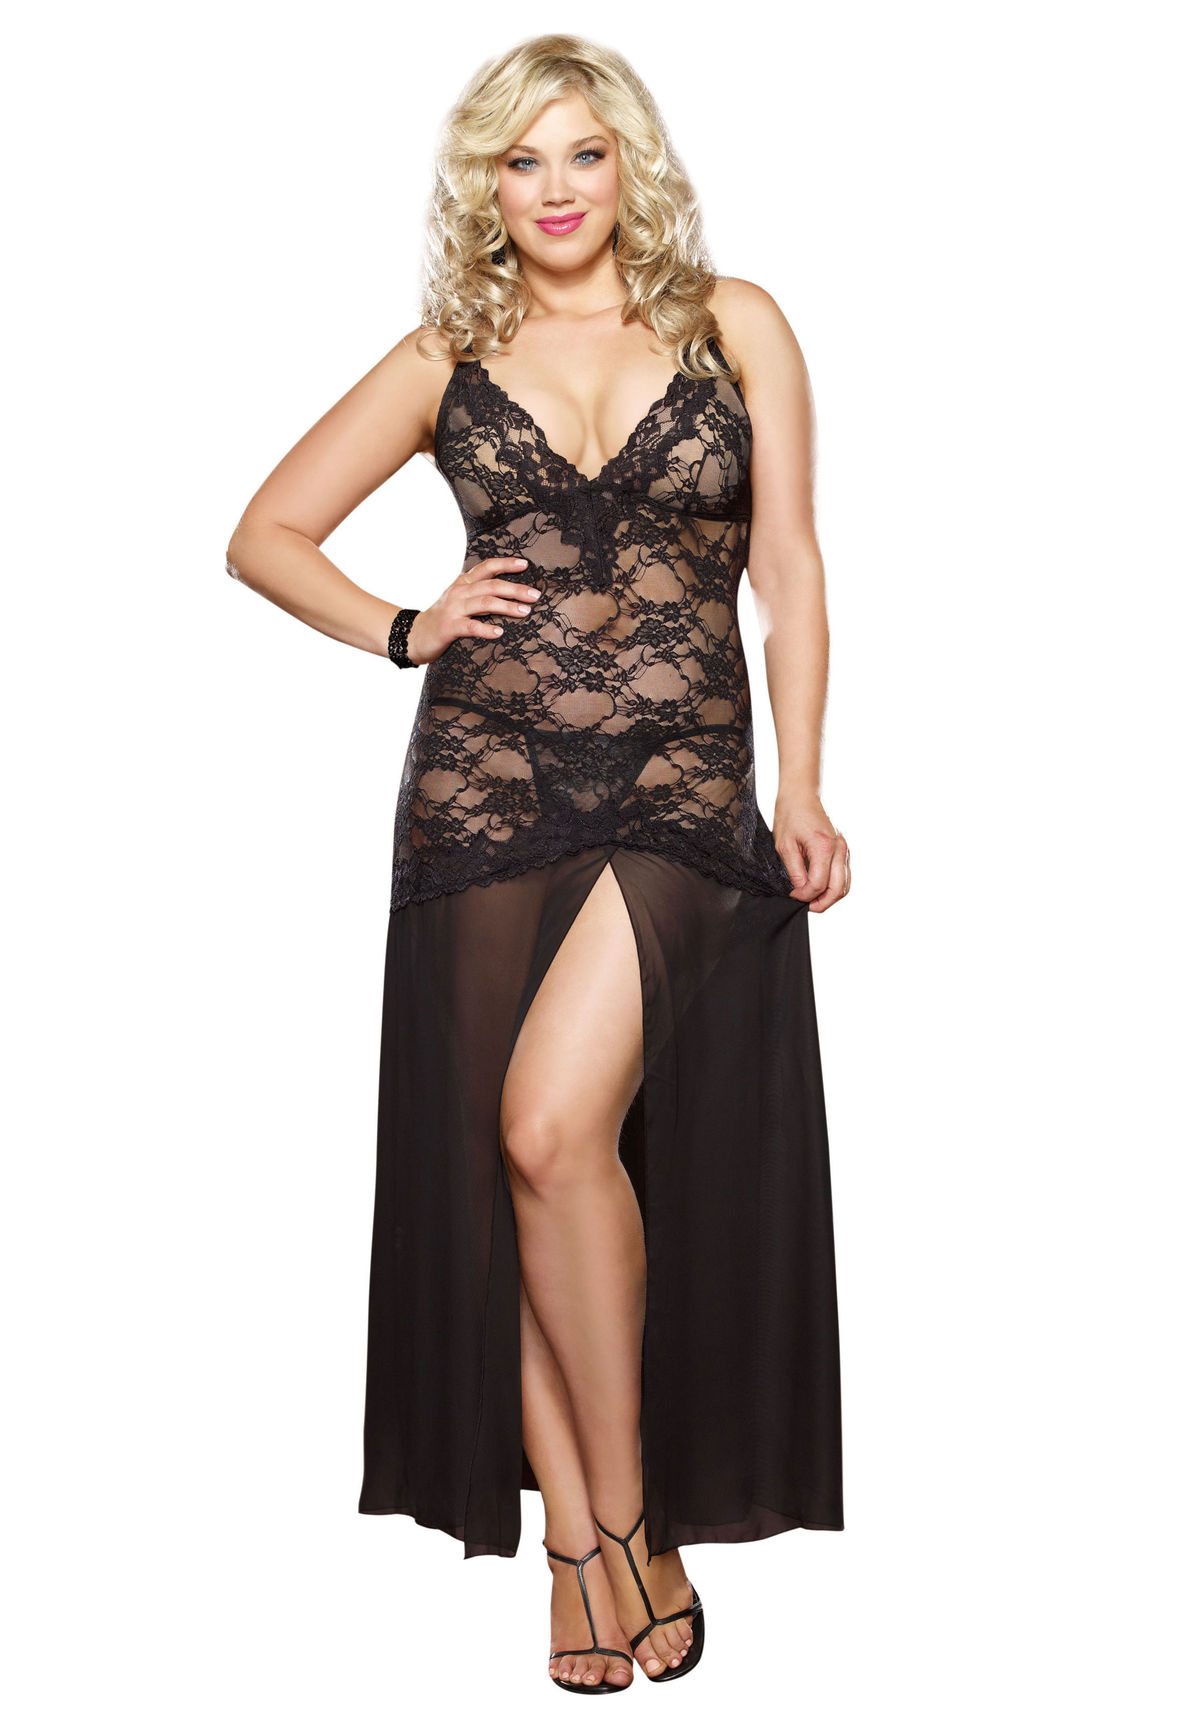 Dreamgirl 8489X Plus Size Gown And Thong